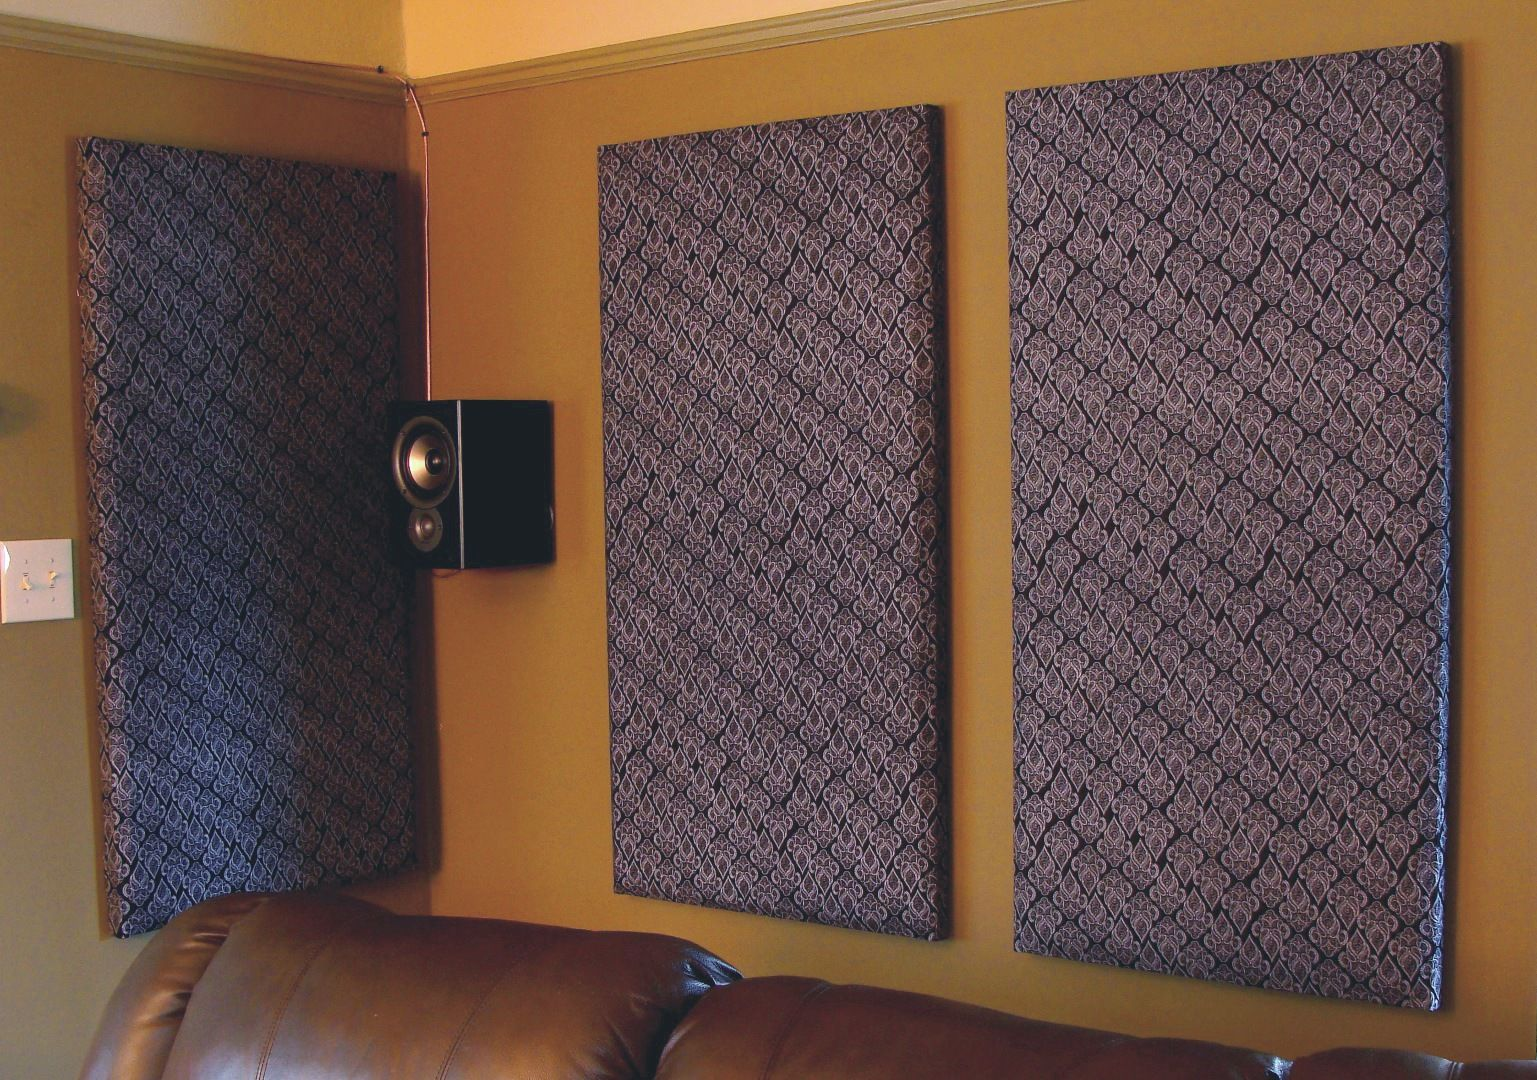 Diy Acoustic Tiles Sound Proofing Home Theater For Around